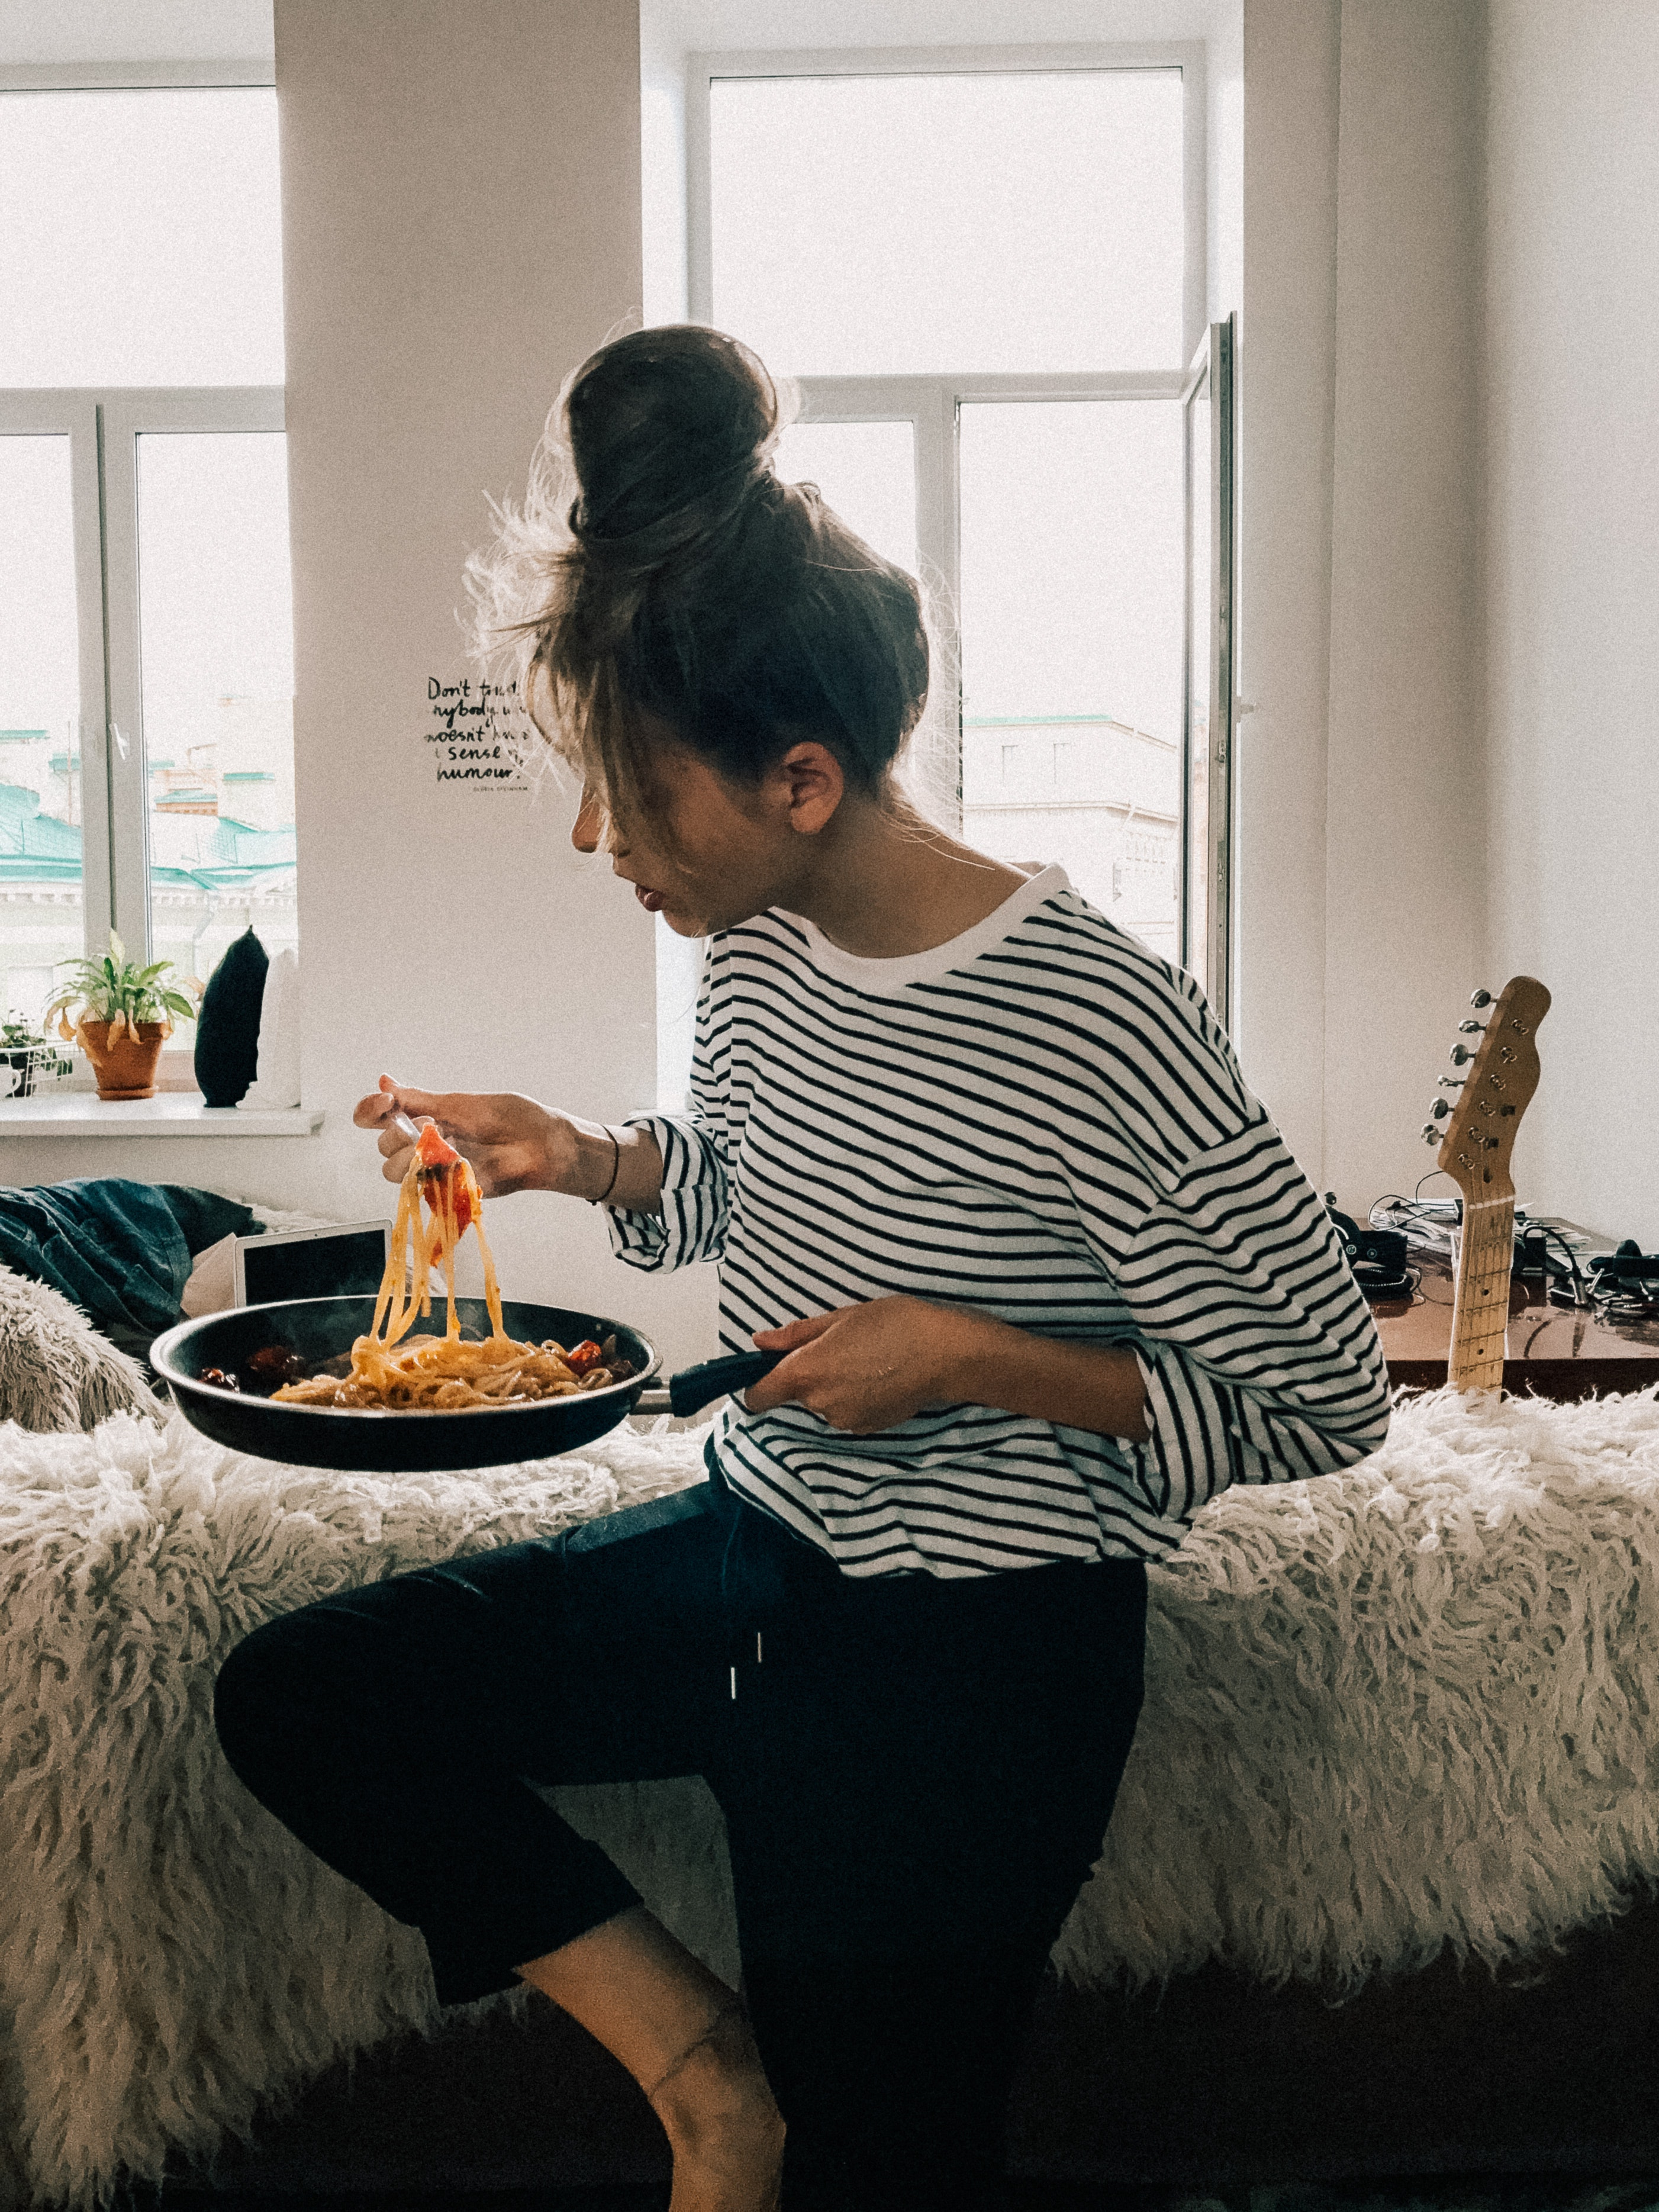 women in striped shirt eating pasta in apartment